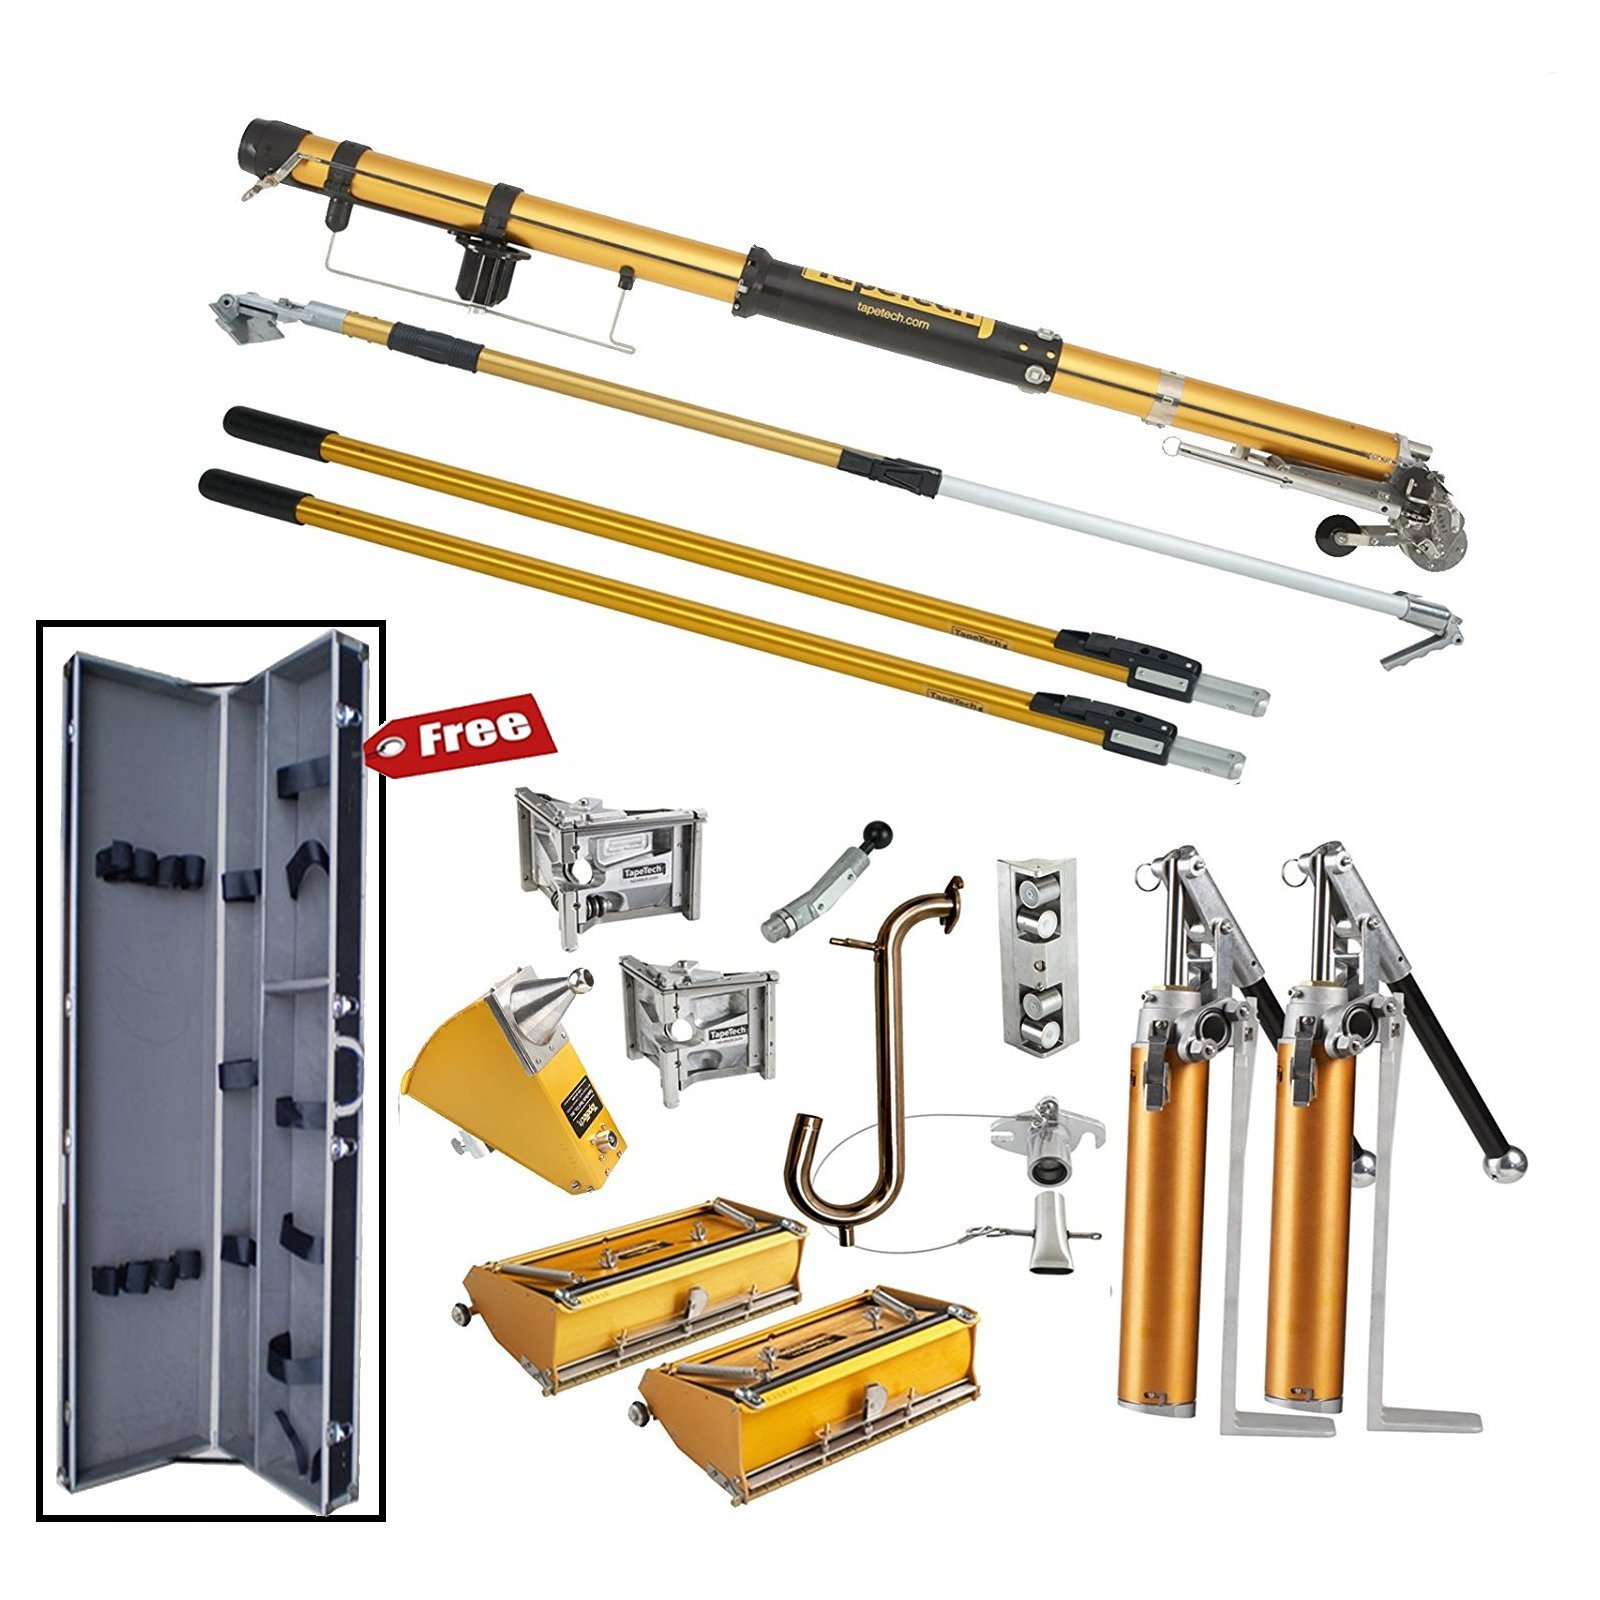 TapeTech Standard Full Drywall Tool Set with 2 Pumps - FREE Tool Case by TapeTech